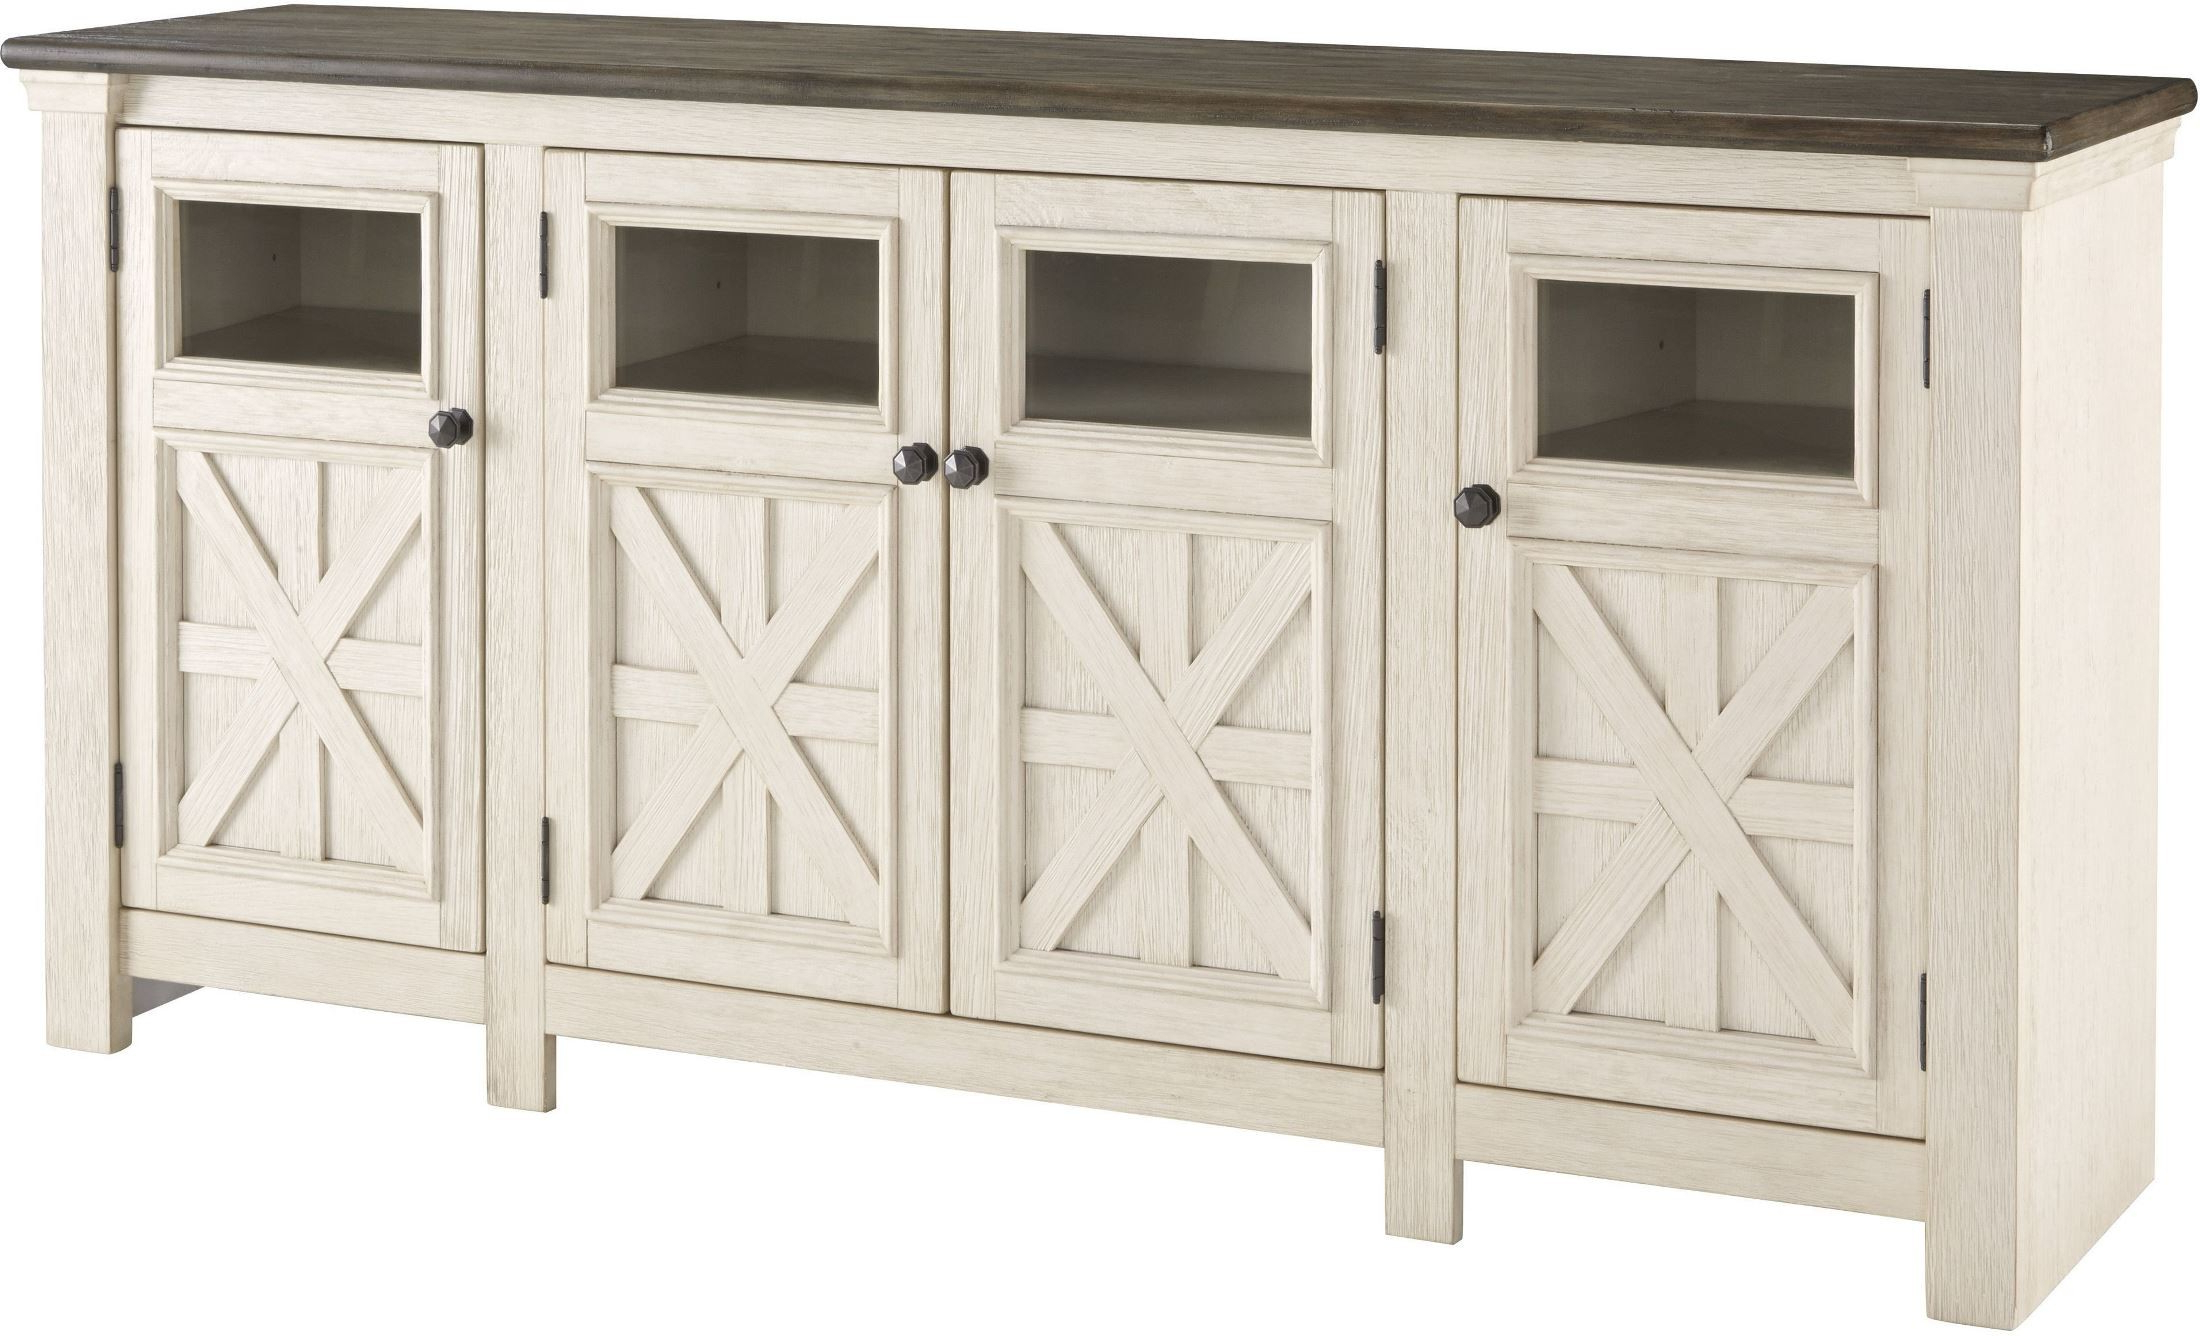 Bolanburg Weathered Gray Extra Large Tv Stand From Ashley (View 4 of 20)